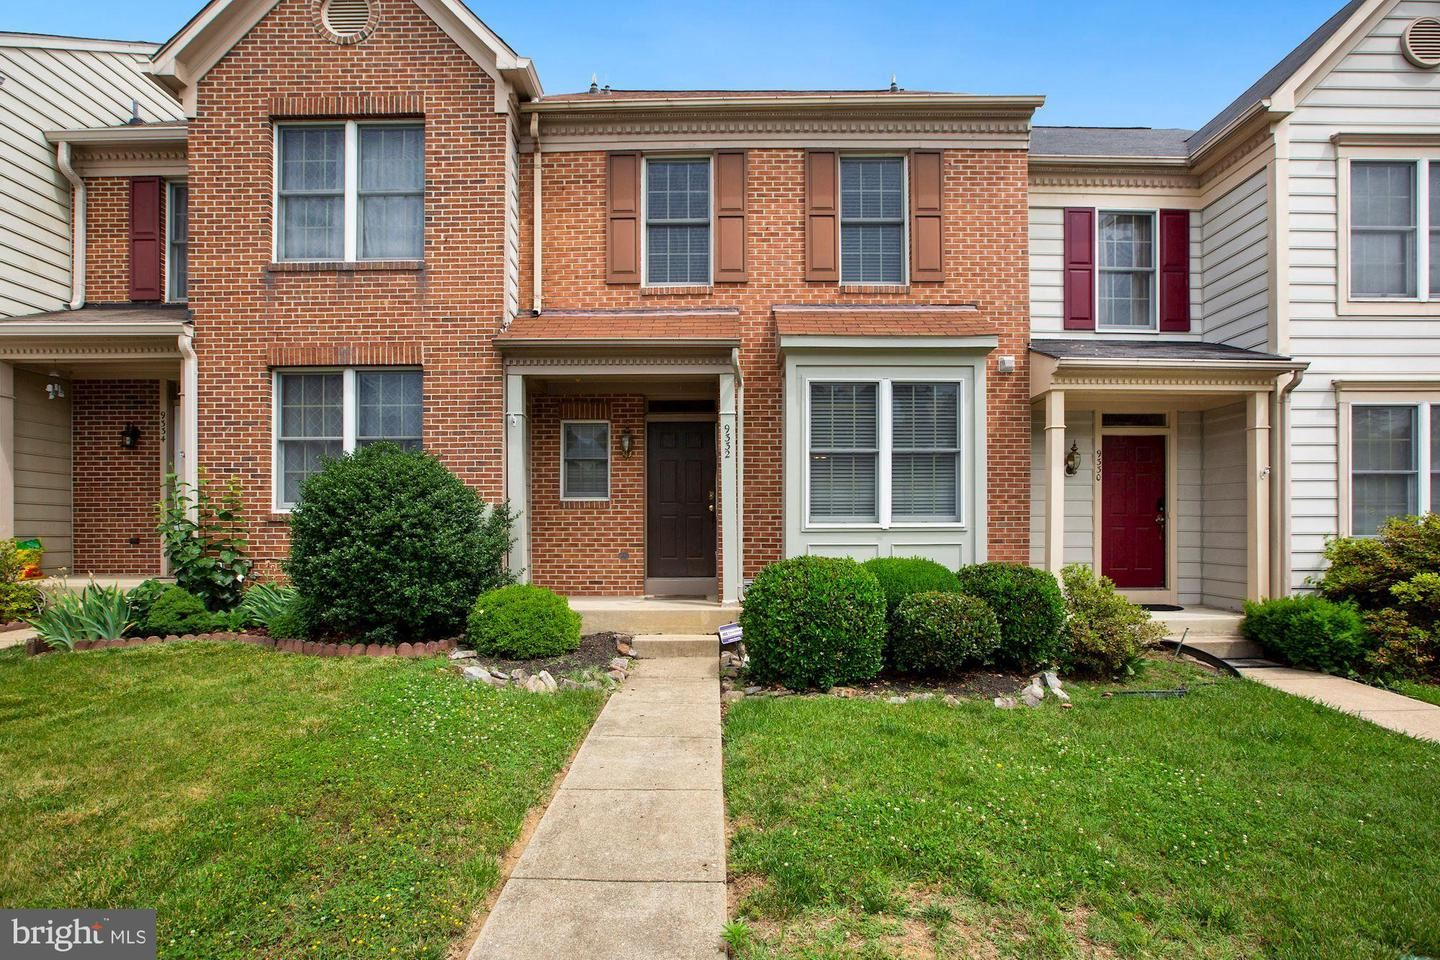 9332 SOMBERSBY CT, Laurel, MD 20723 - MLS#: MDHW295666